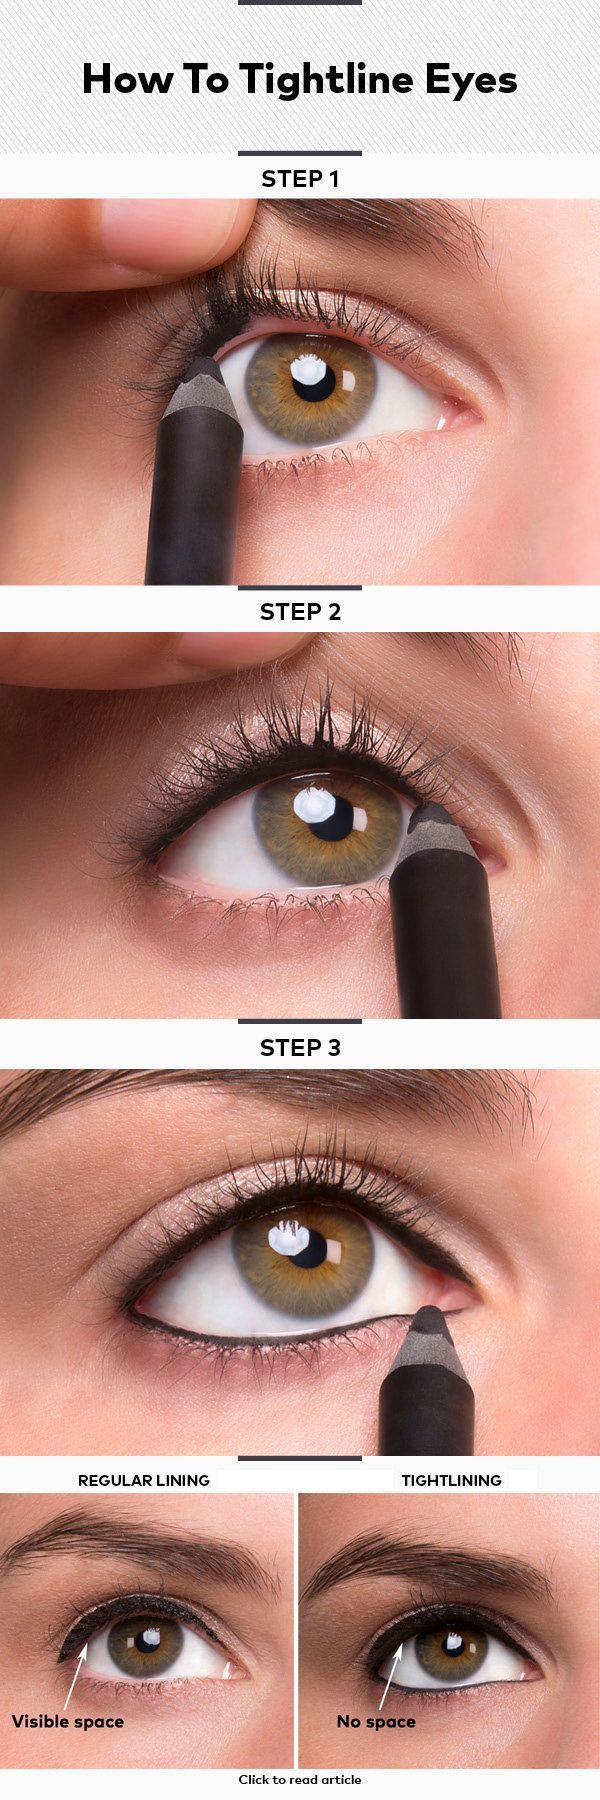 This is the only way I use eyeliner now! It looks a million times better! I like using Younique's pencils too because, first of all, they come in some great colors, but second of all, because they're sharpened to a rounded tip! I don't feel like I'm going to poke myself in the eye!